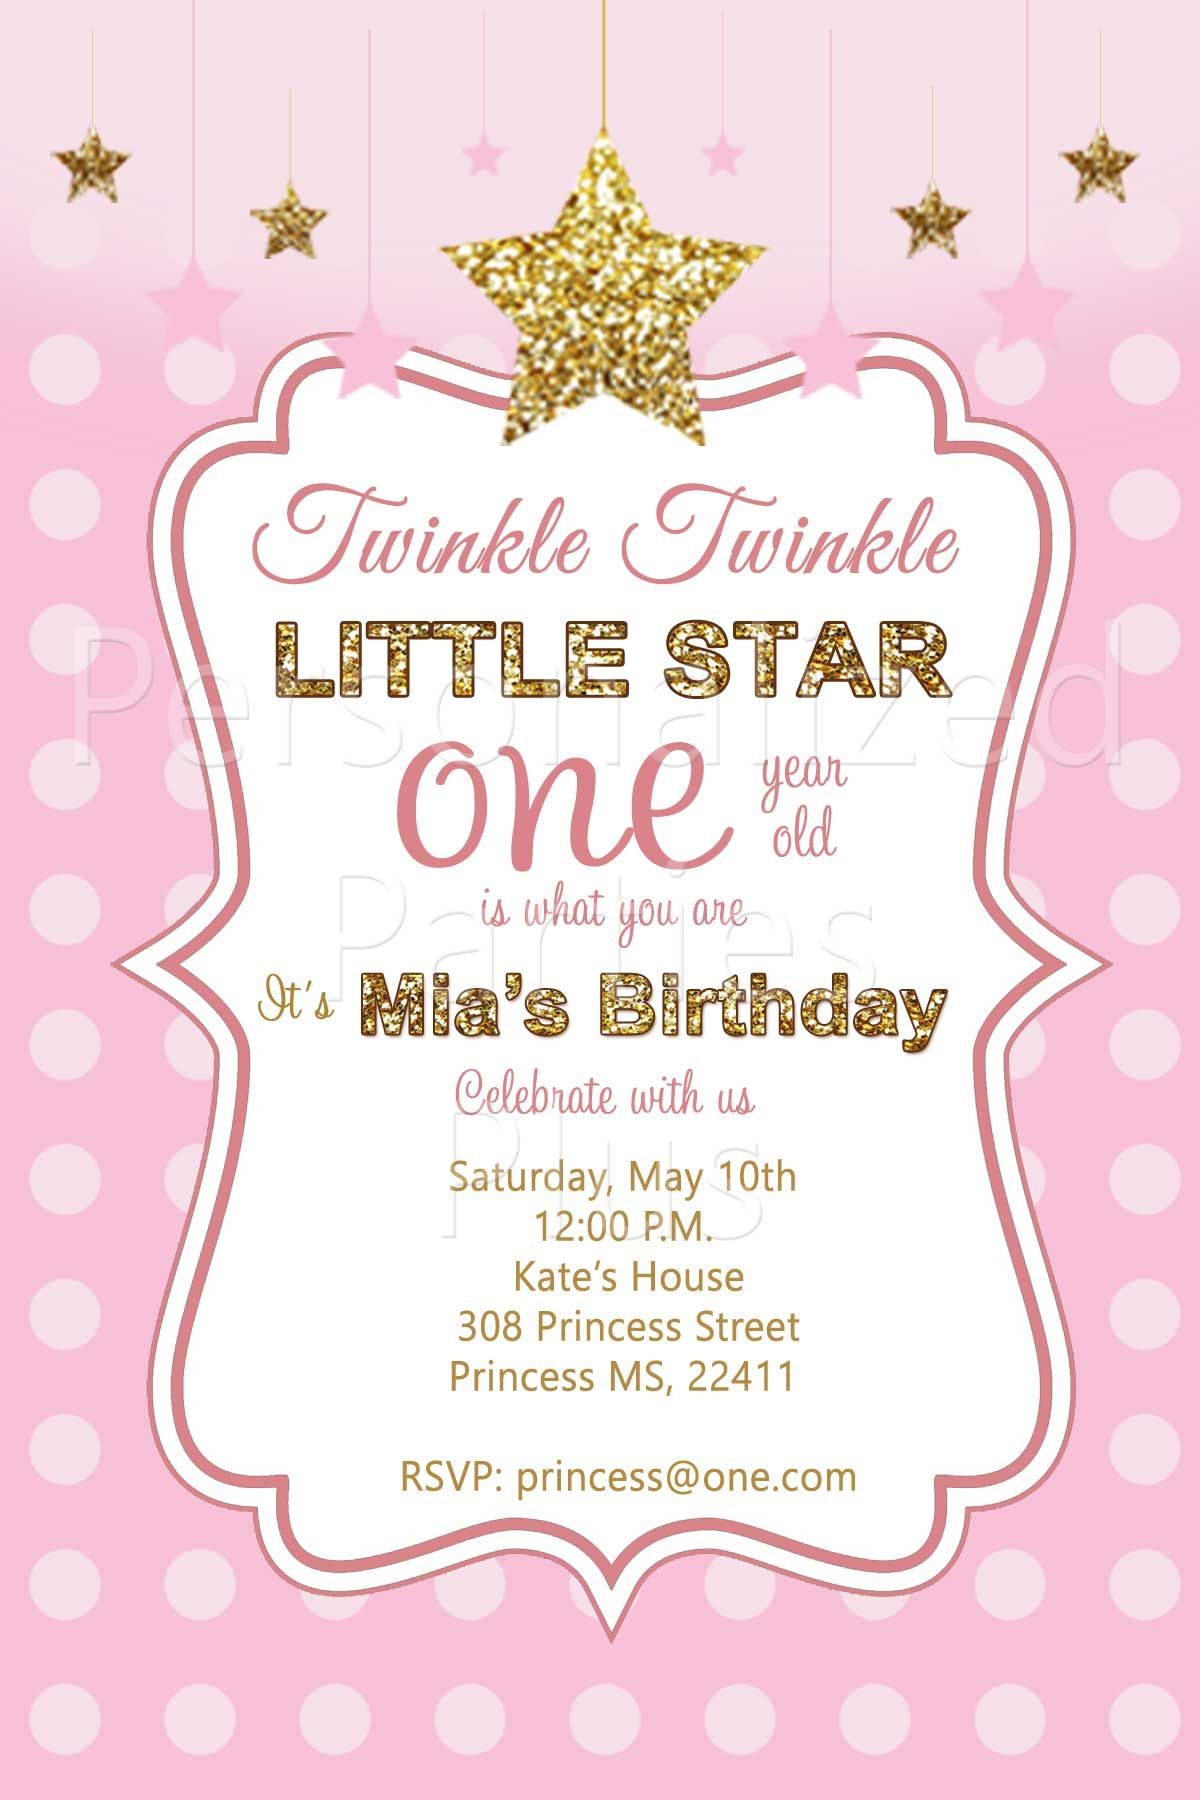 Twinkle twinkle little star birthday invitations | Pink and gold ...